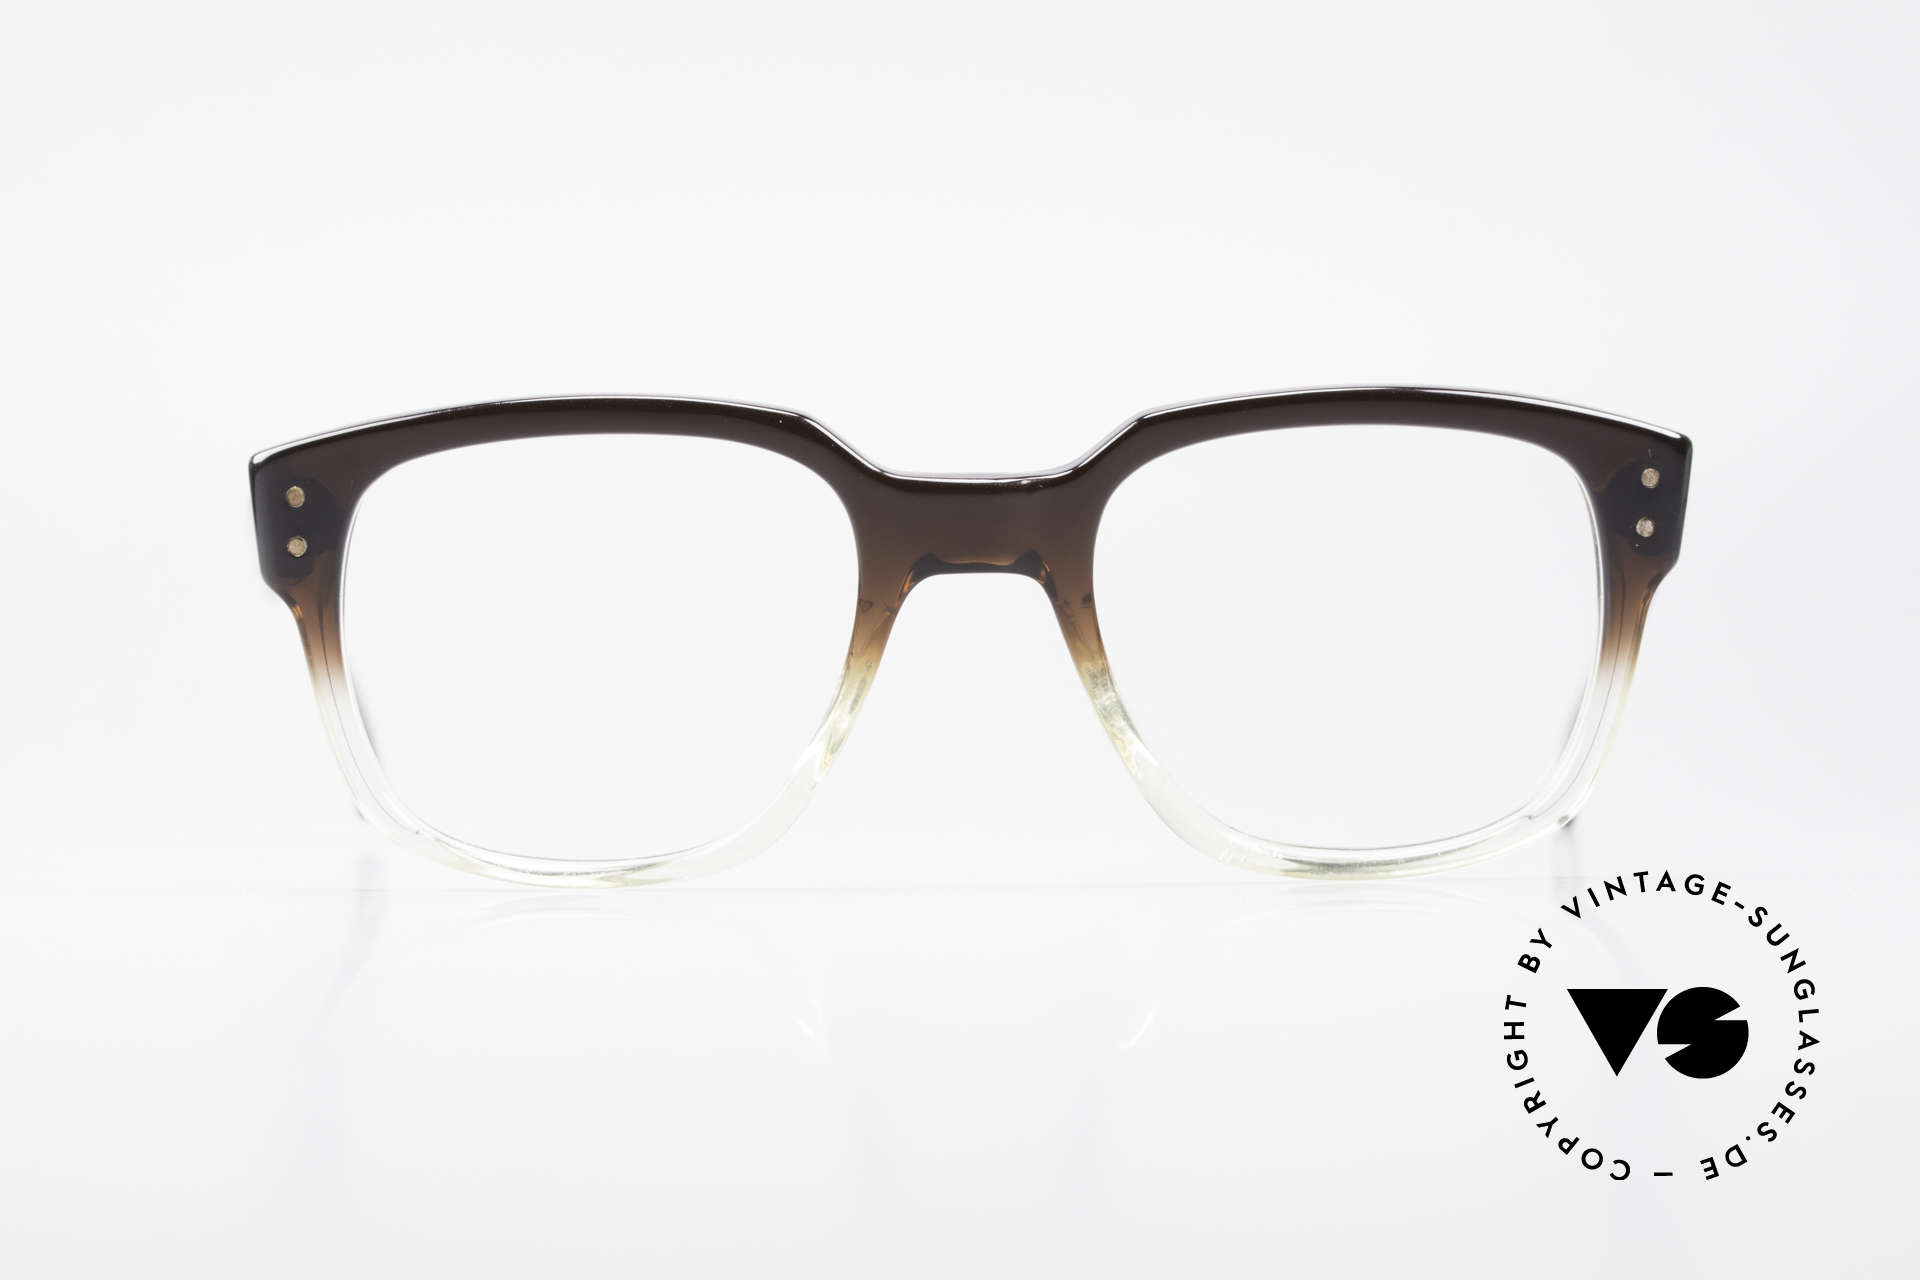 Metzler 447 Vintage Glasses Nerd Hipster, incredible premium craftsmanship (You must feel this!), Made for Men